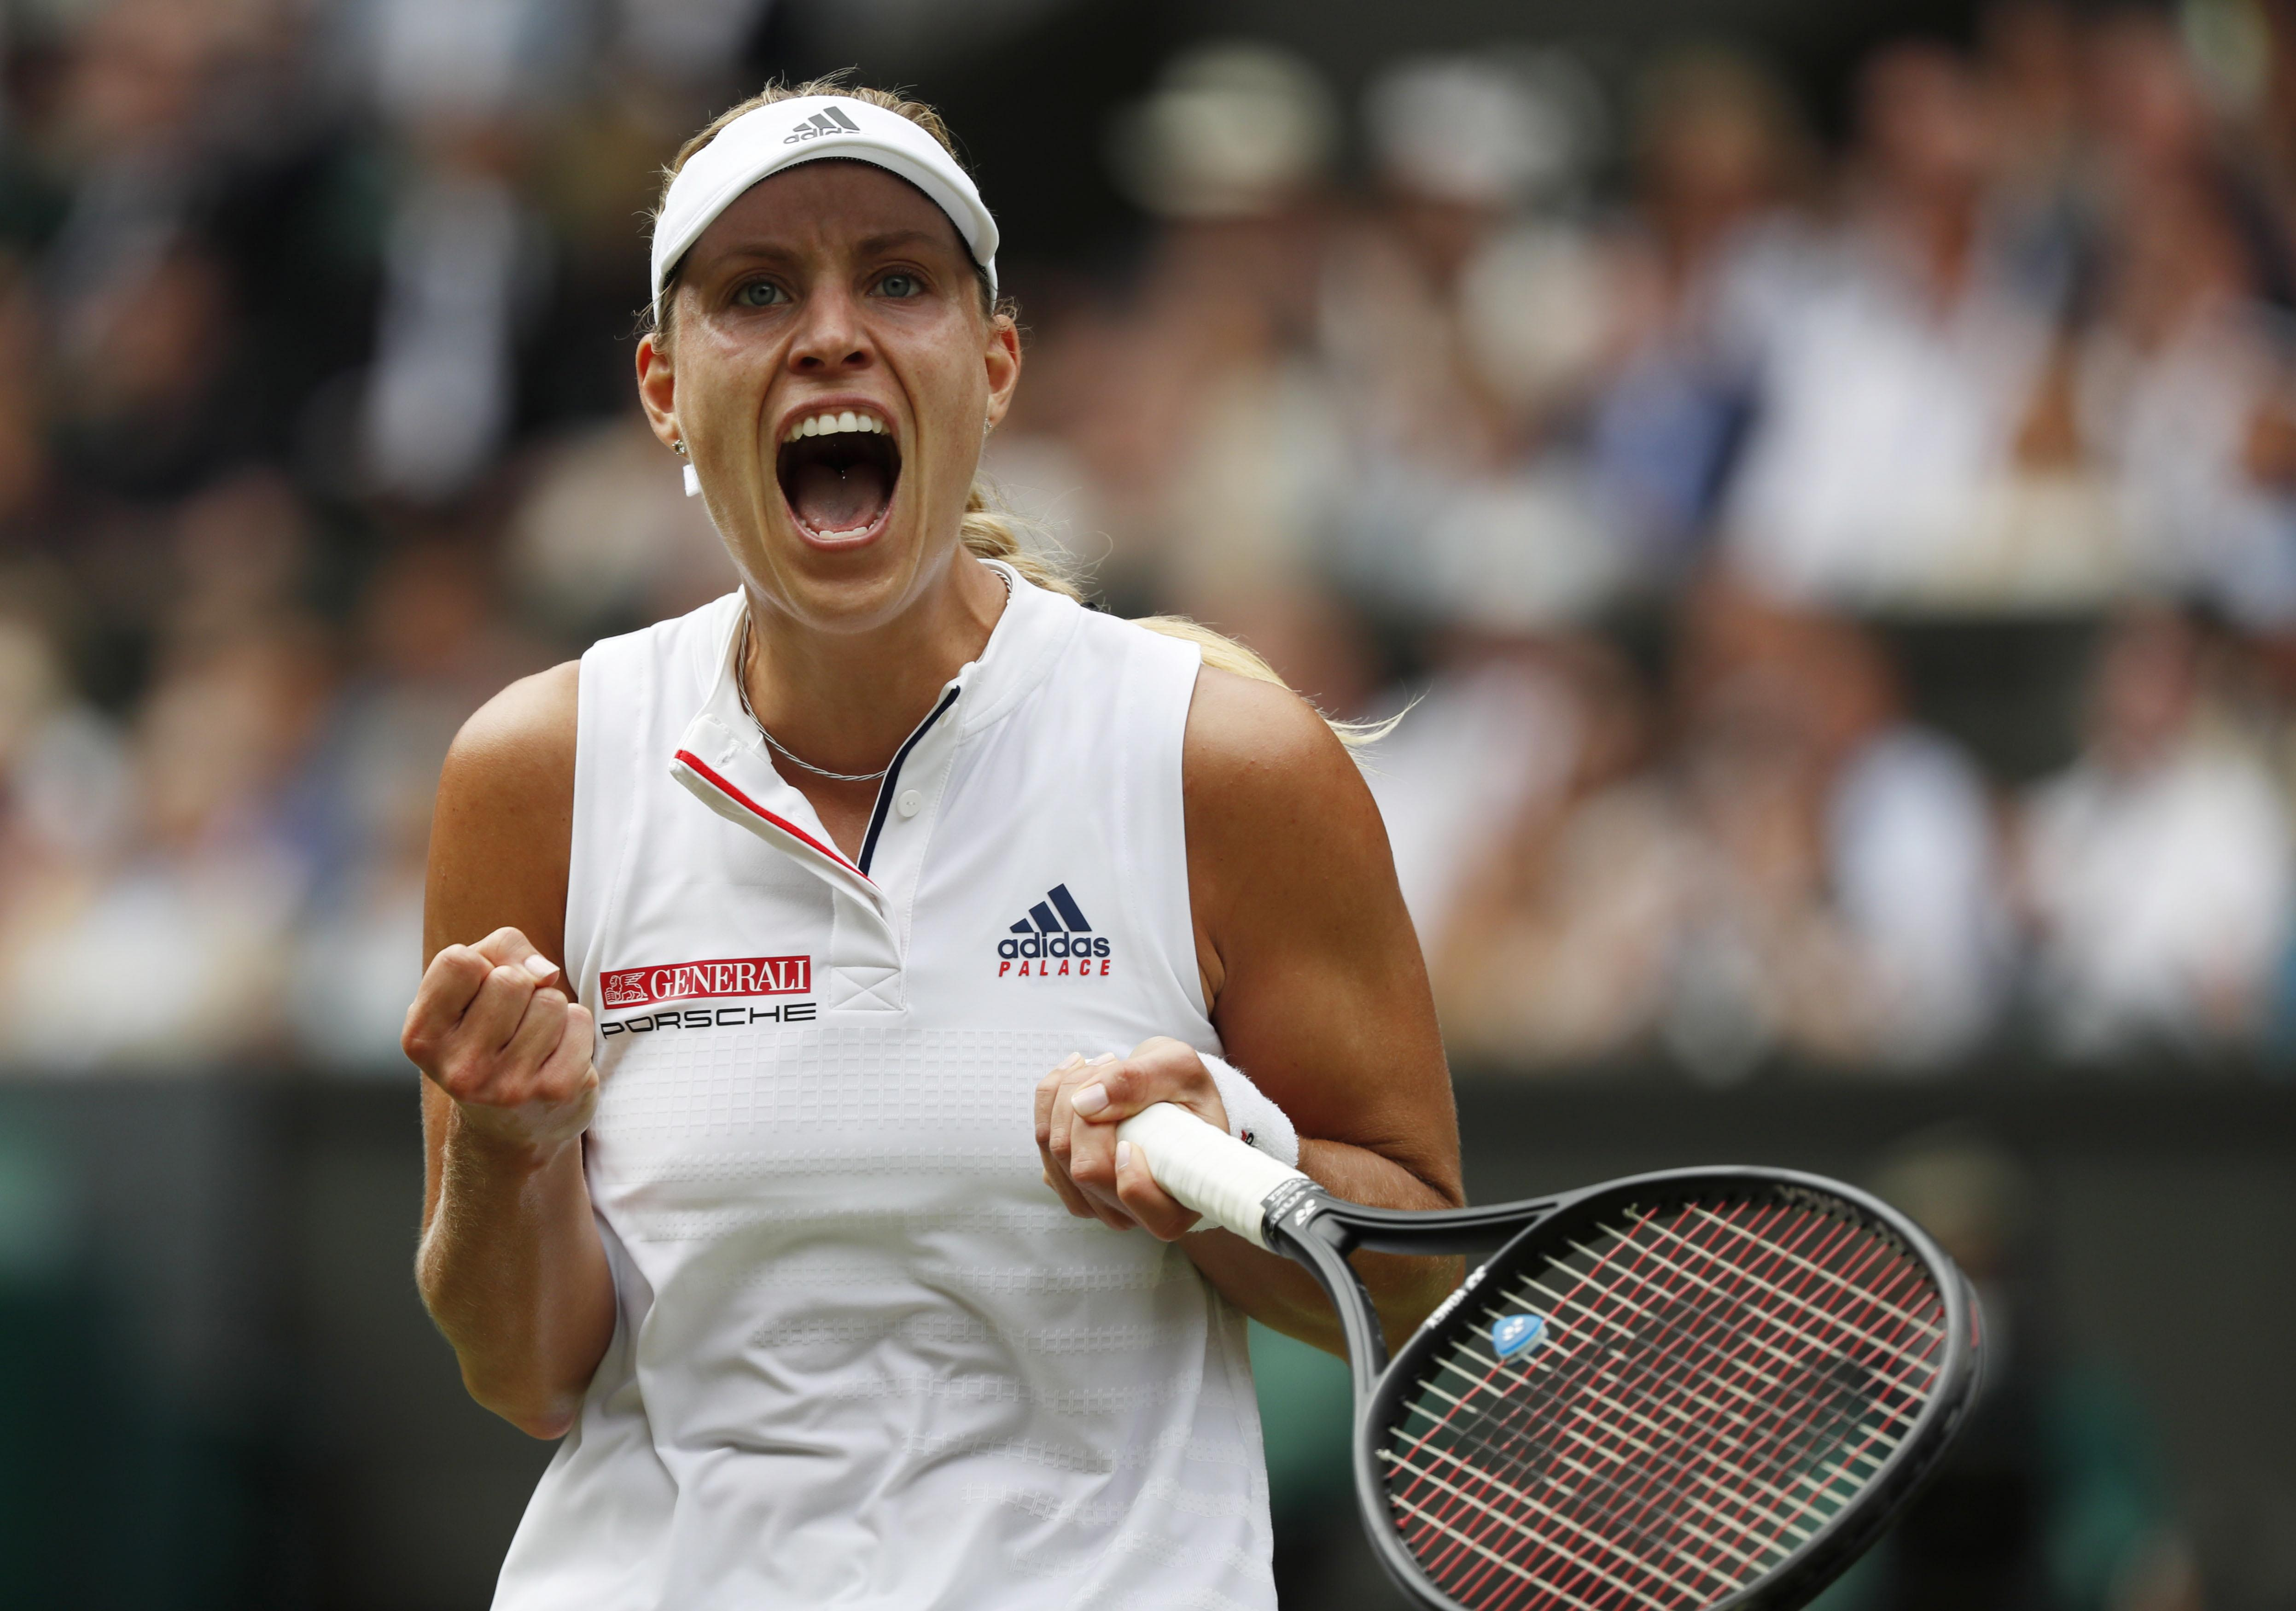 Angelique Kerber lets out a roar as she seals a place in the semi-finals of Wimbledon by beating Daria Kasatkina